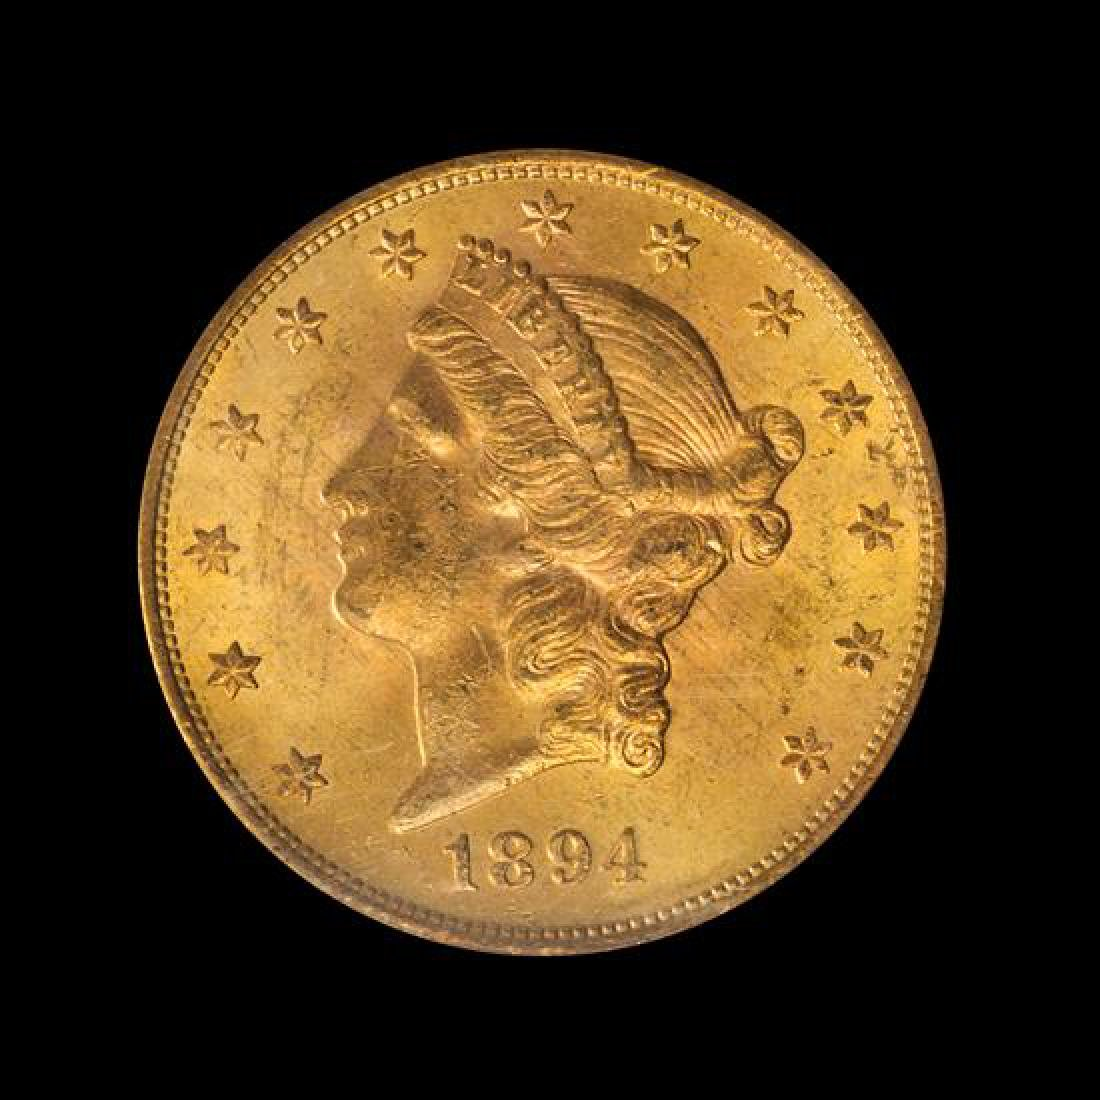 A United States 1894-S Liberty Head $20 Gold Coin